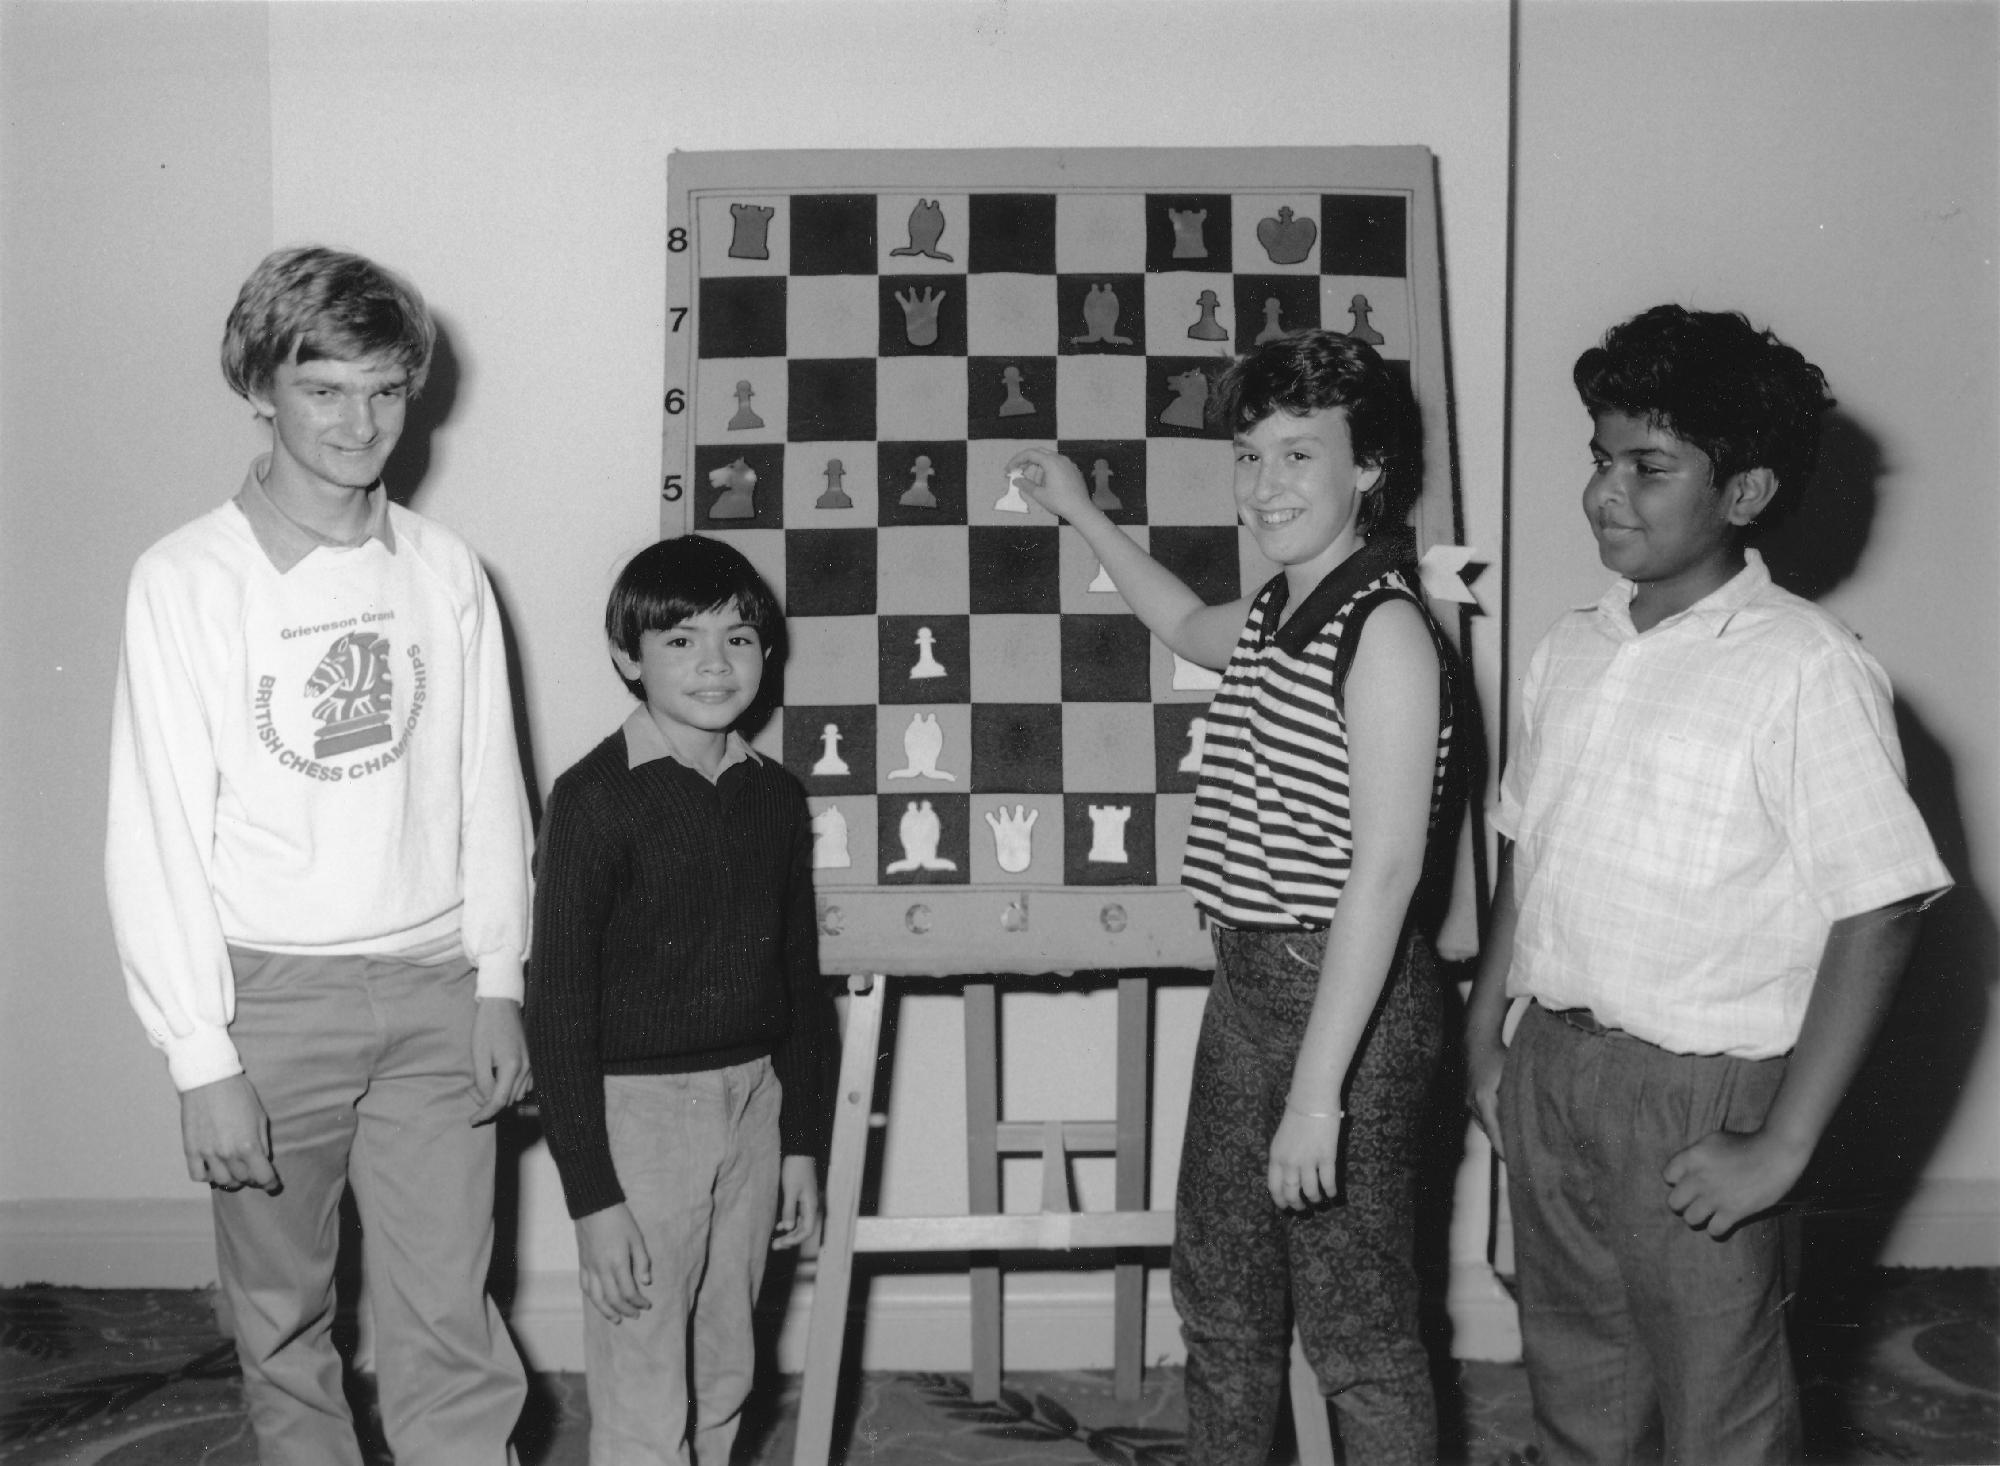 Lawrence Cooper, Demis Hassabis, Cathy Haslinger and Dharshan Kumaran in around 1986. Possibly at a Lloyds Bank event.